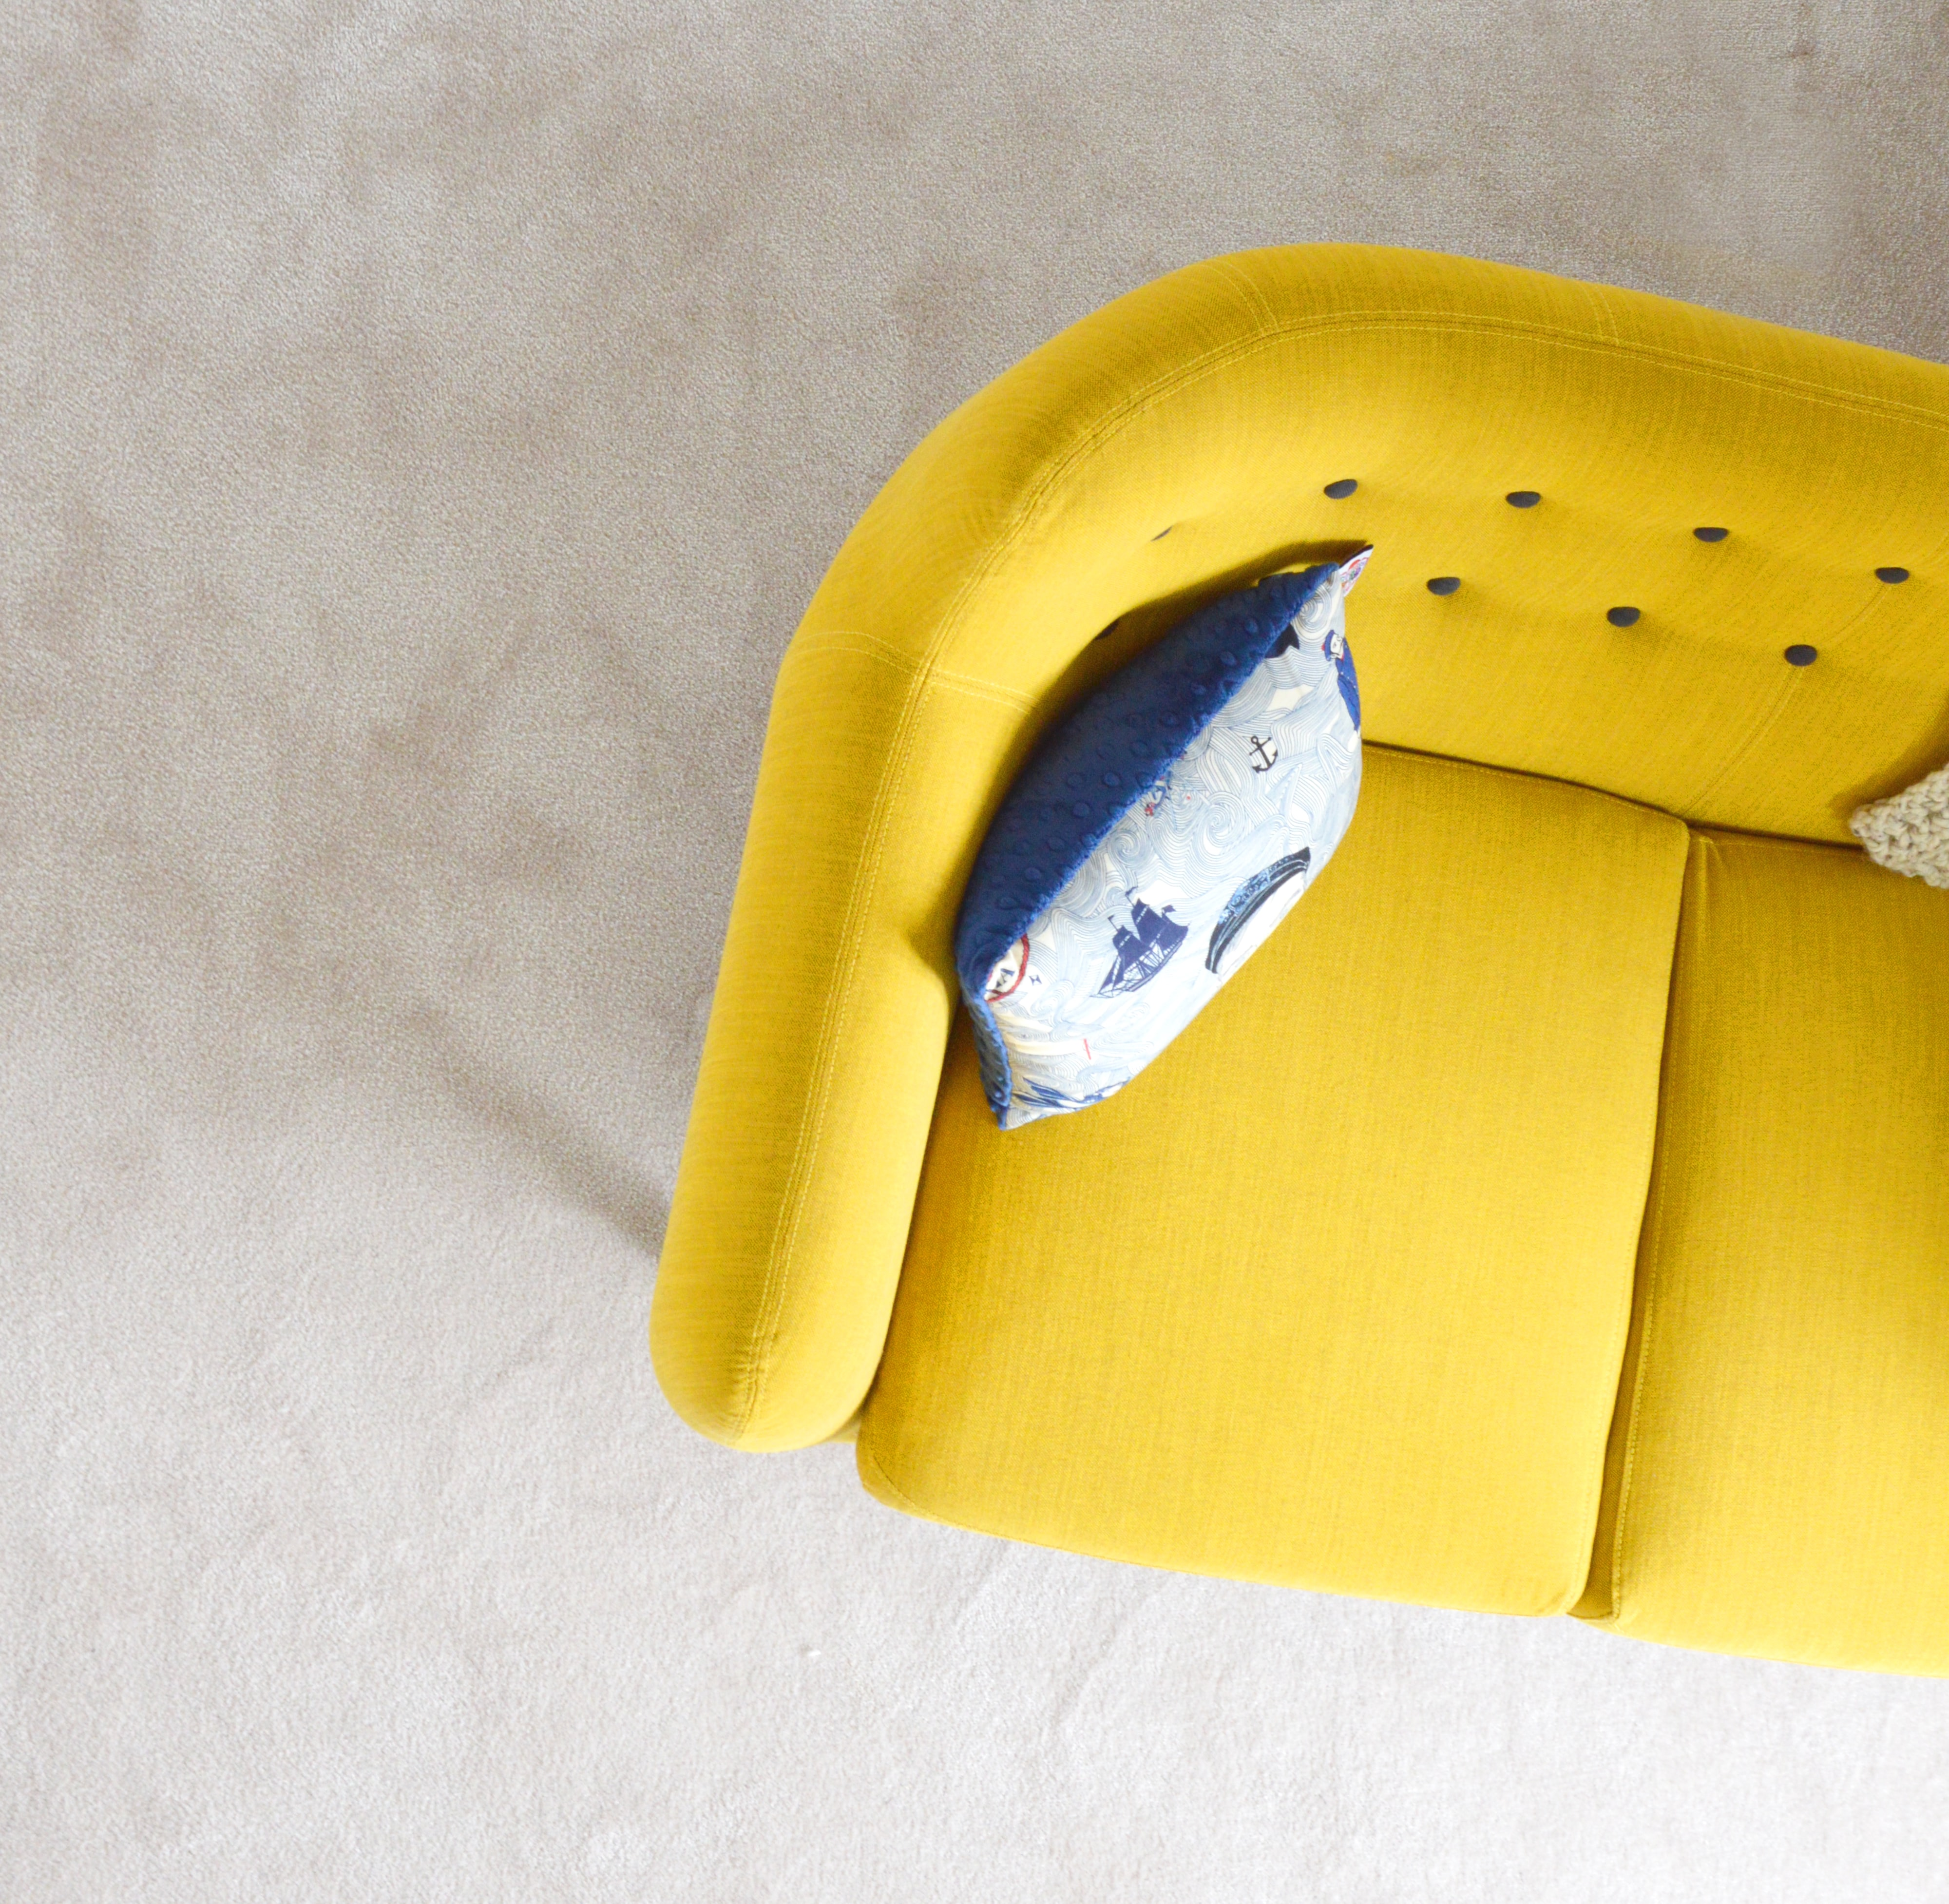 yellow fabric sofa with throw pillow